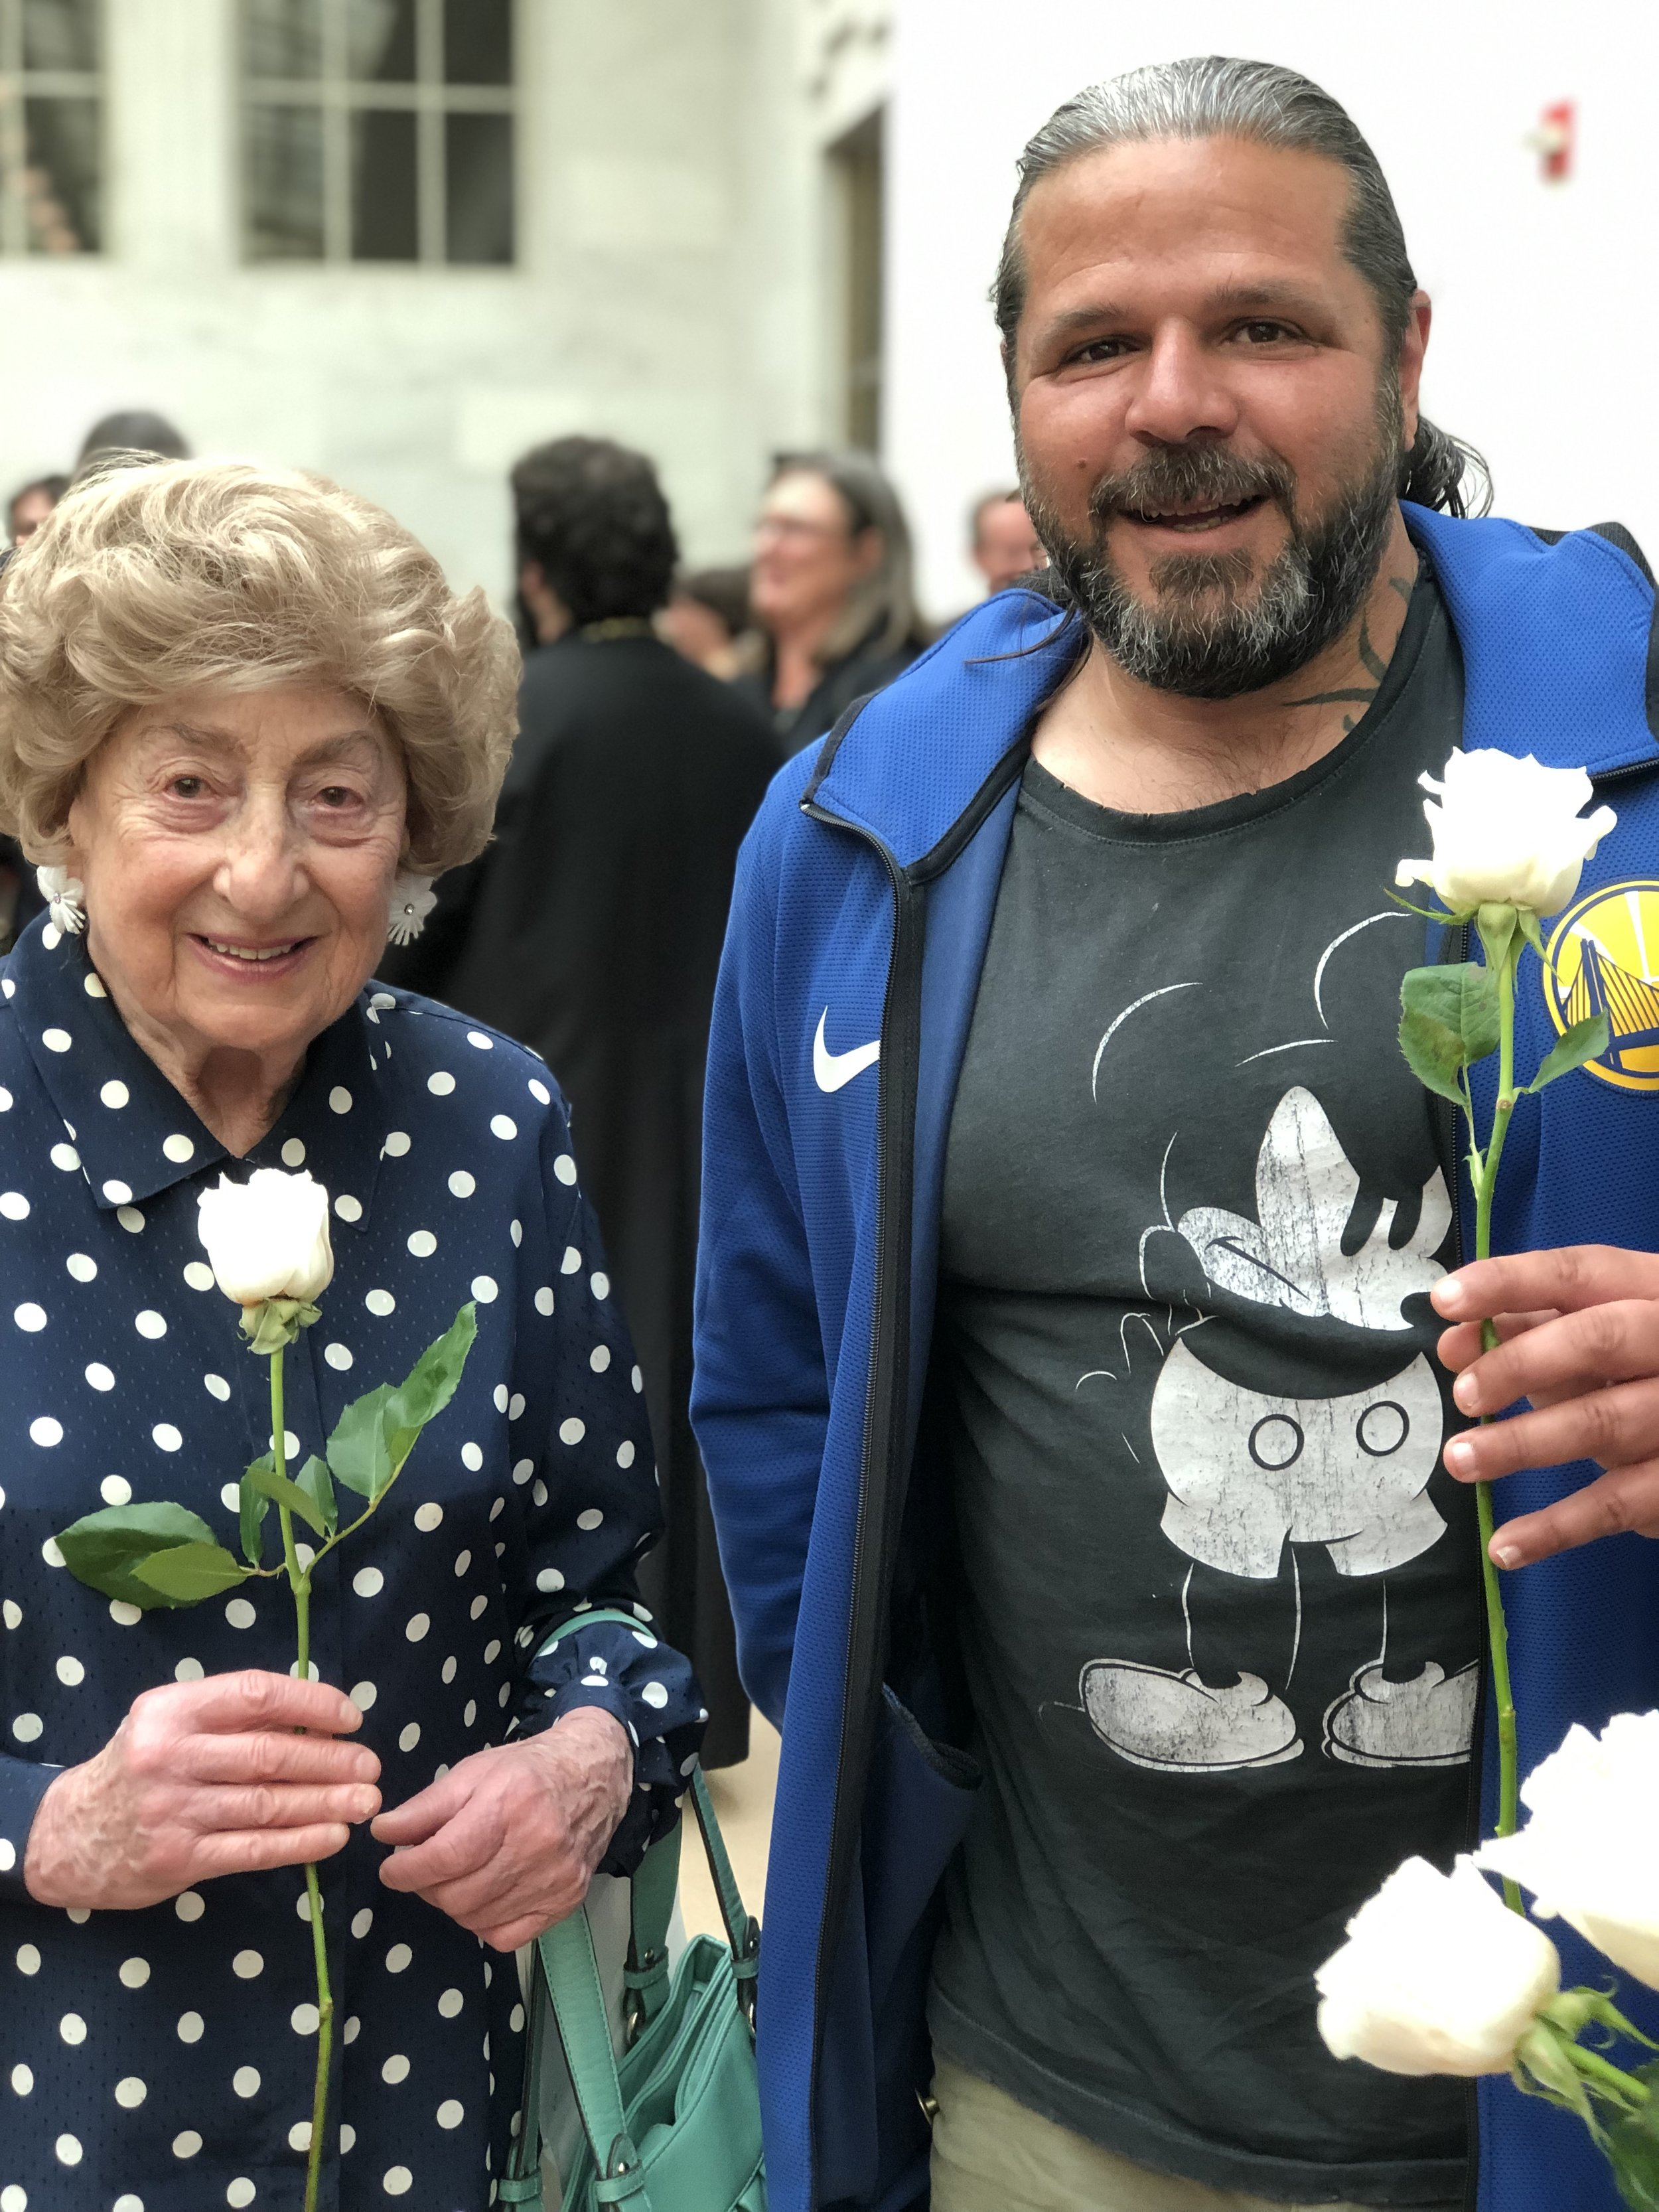 A Holocaust Survivor with the artist, Luigi Toscano, holding a symbolic flower of freedom to represent The White Rose Movement, led by Sophie Scholl, founder of the peaceful resistance movement against the Nazi regime.